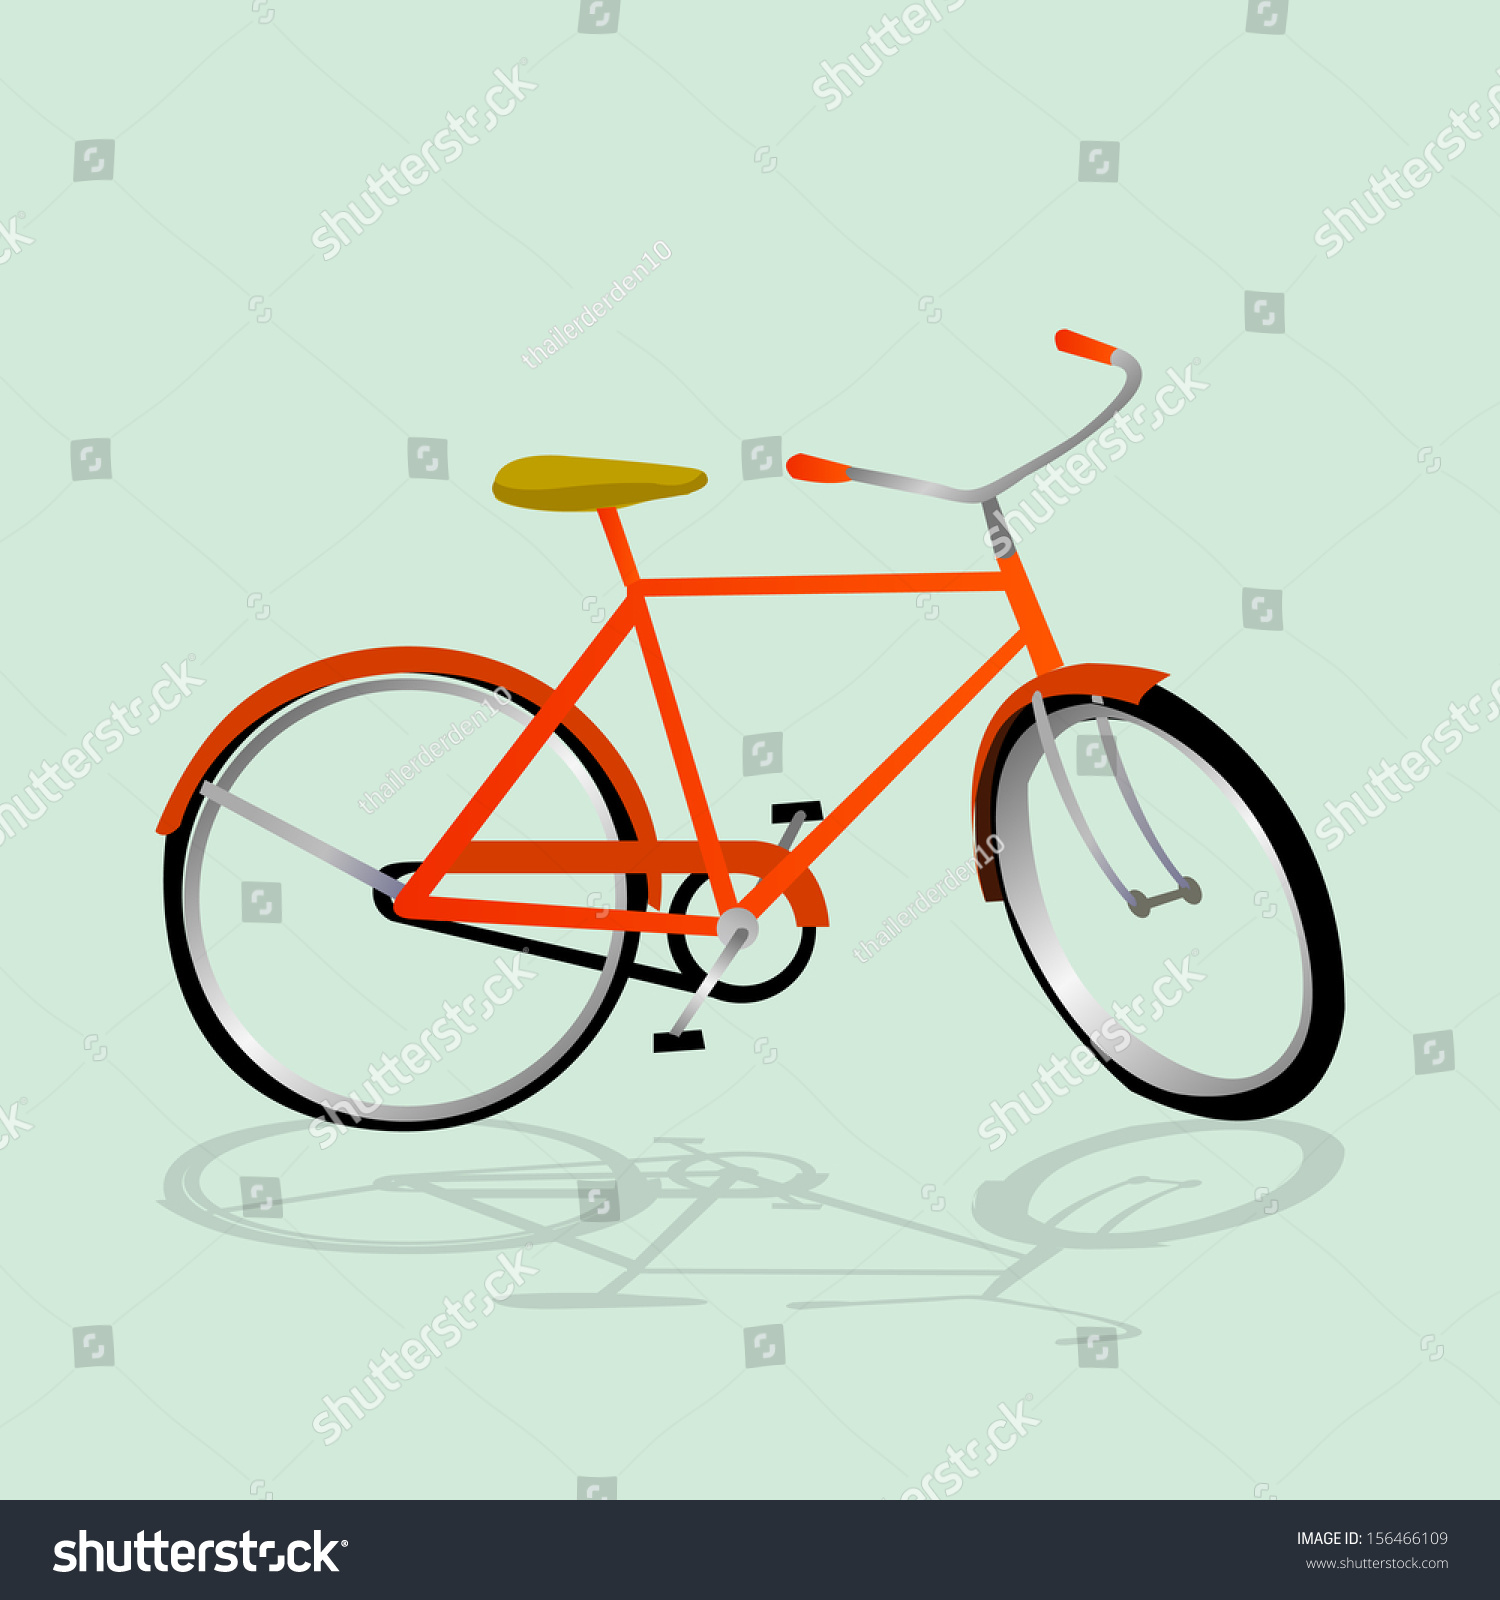 Simple bicycle illustration - photo#36